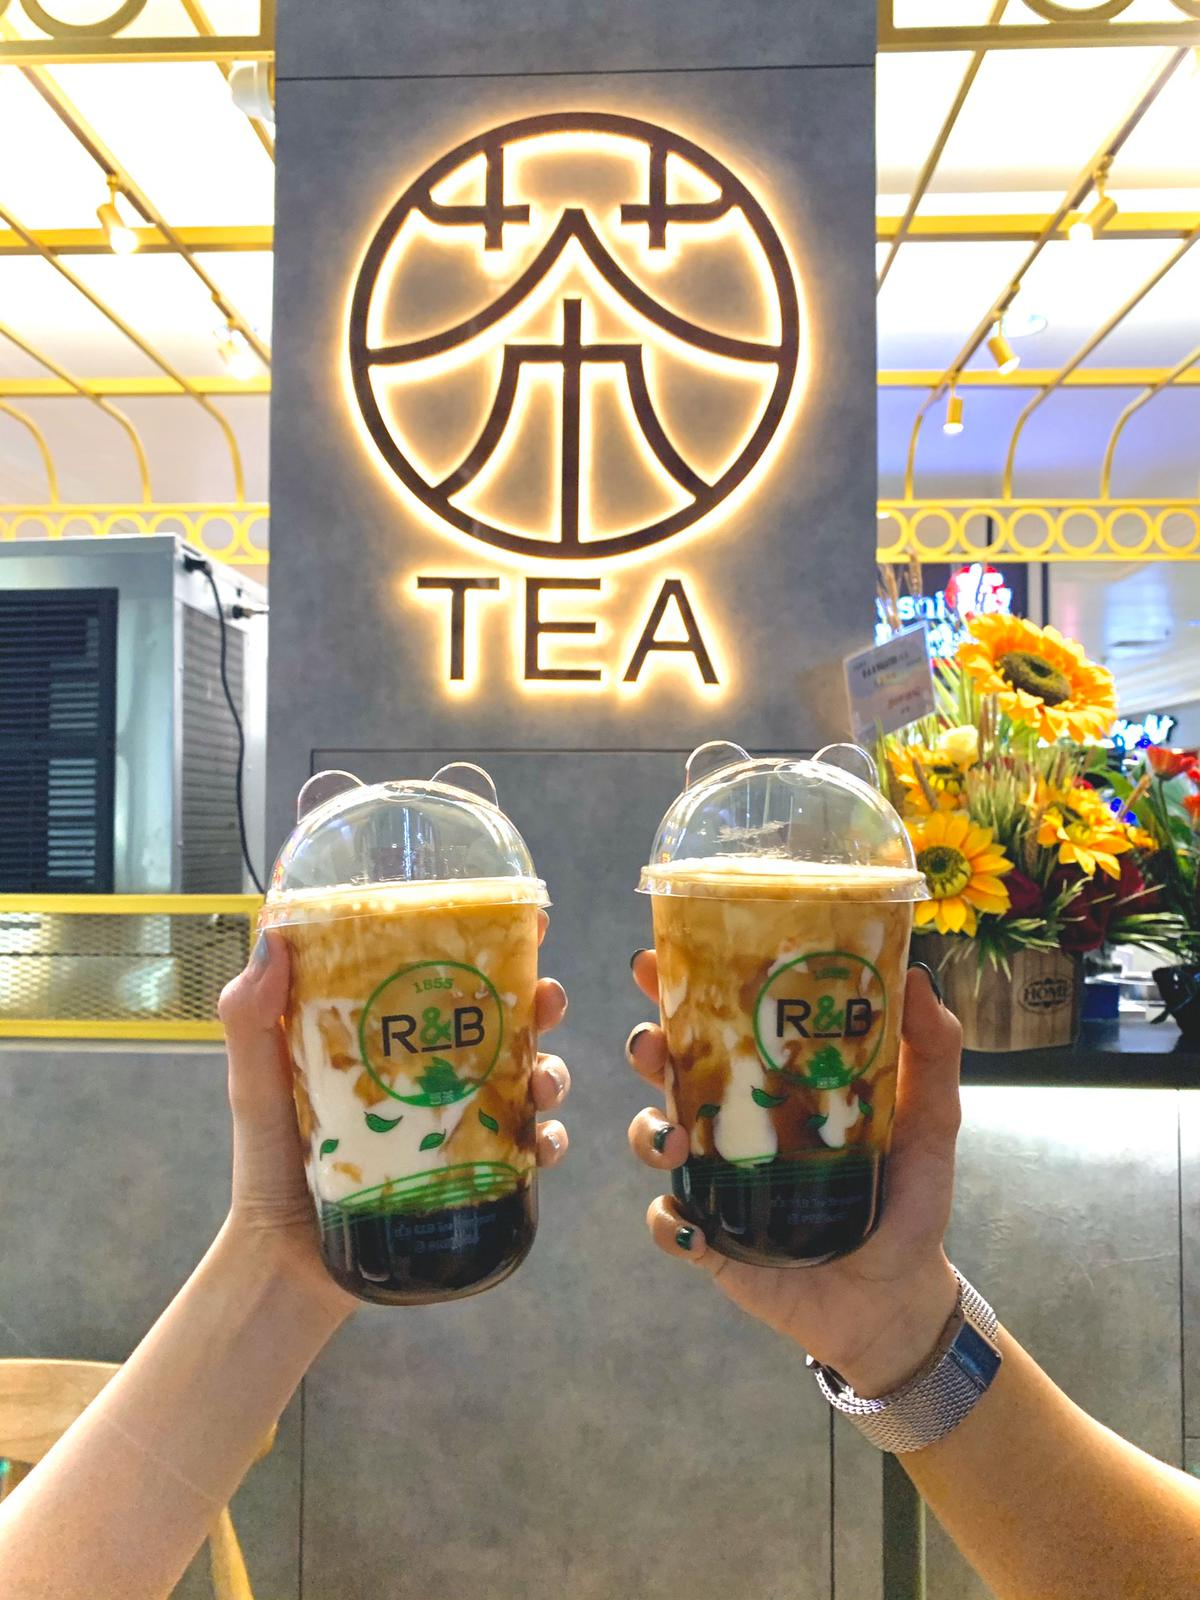 R&B Tea Best Bubble Tea